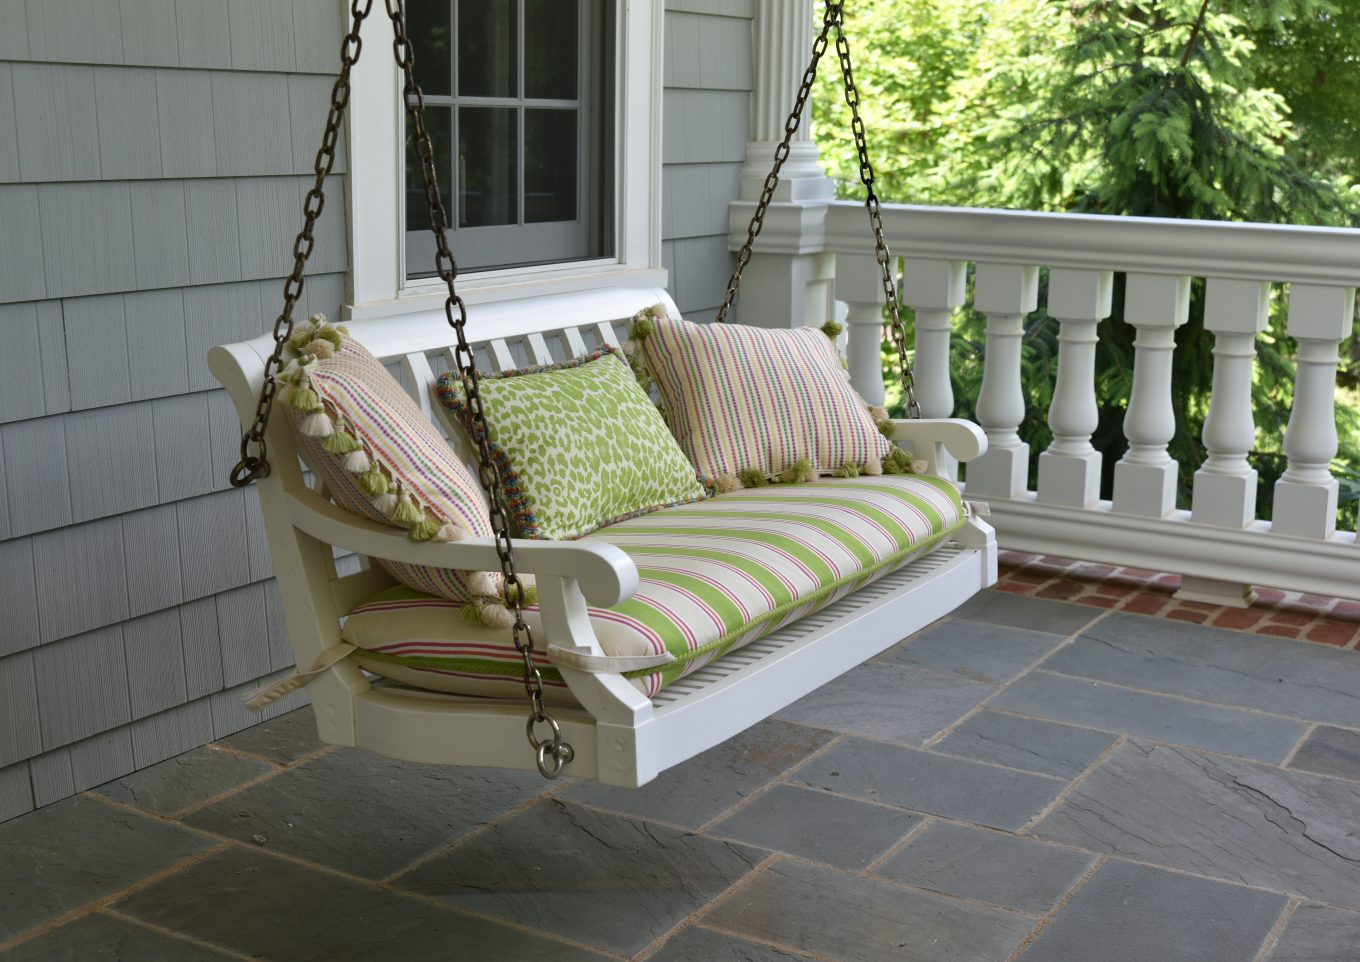 empty swing chair on porch